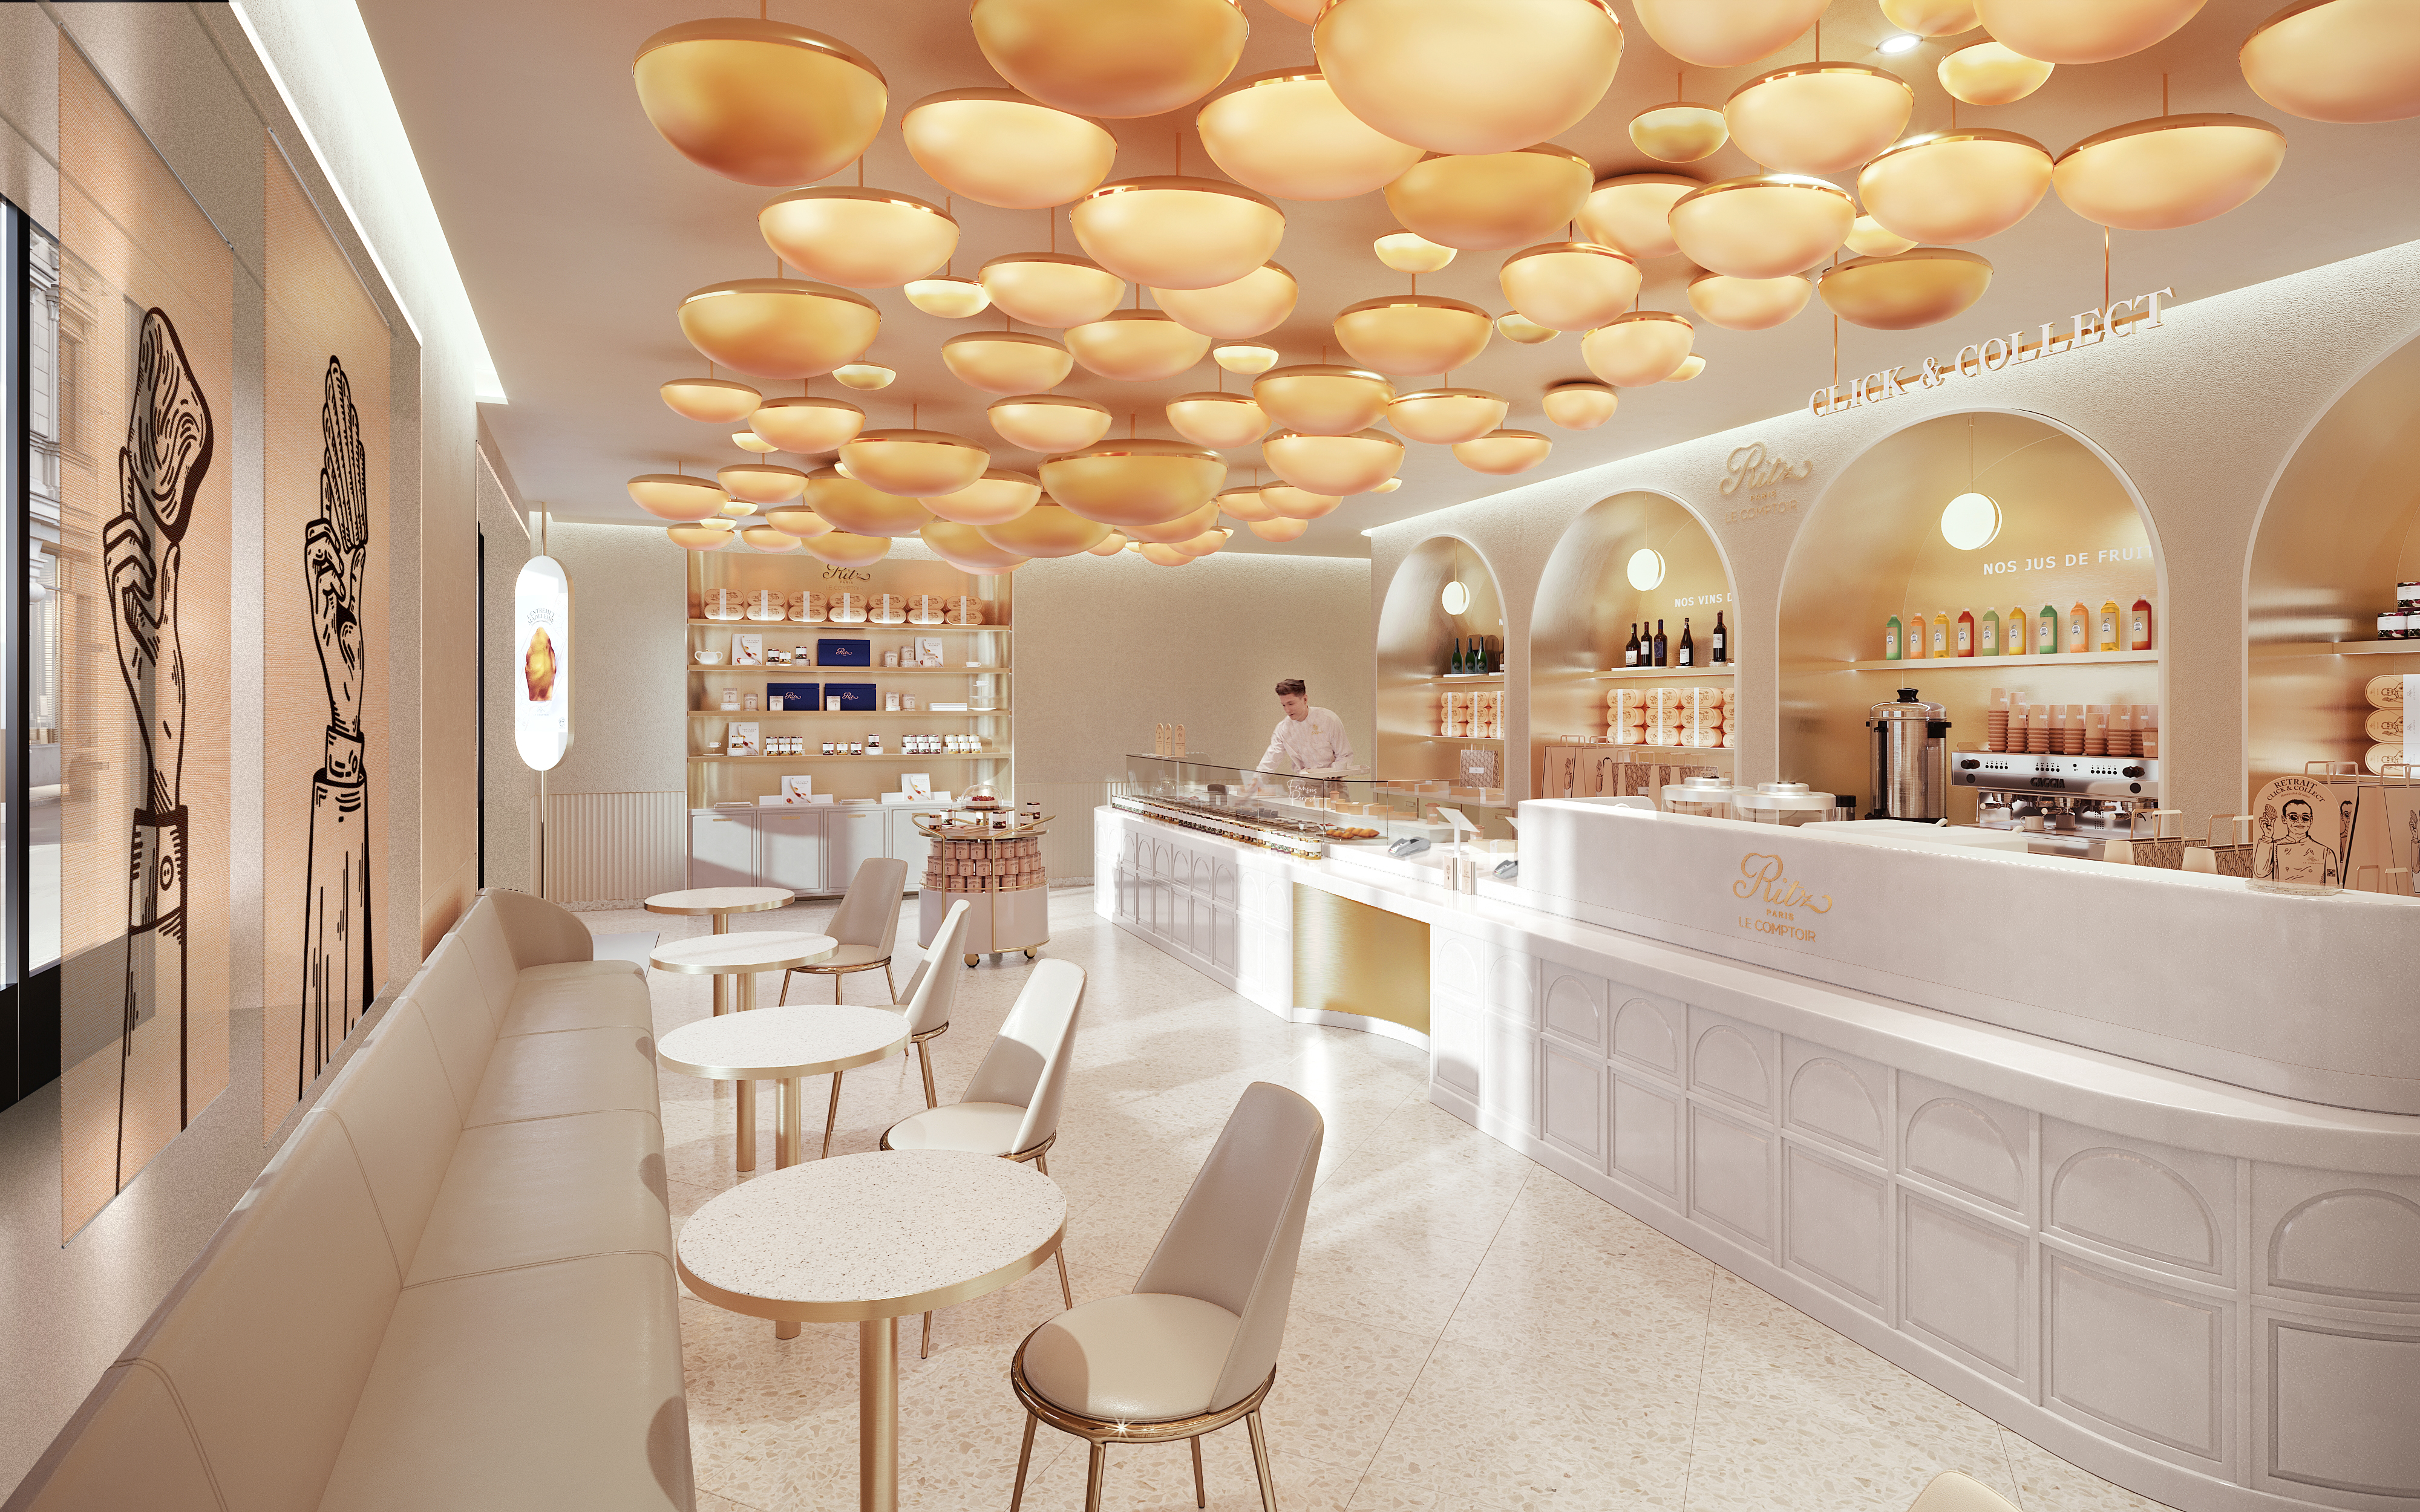 A rendering of the future Ritz Paris Le Comptoir on Rue Cambon.